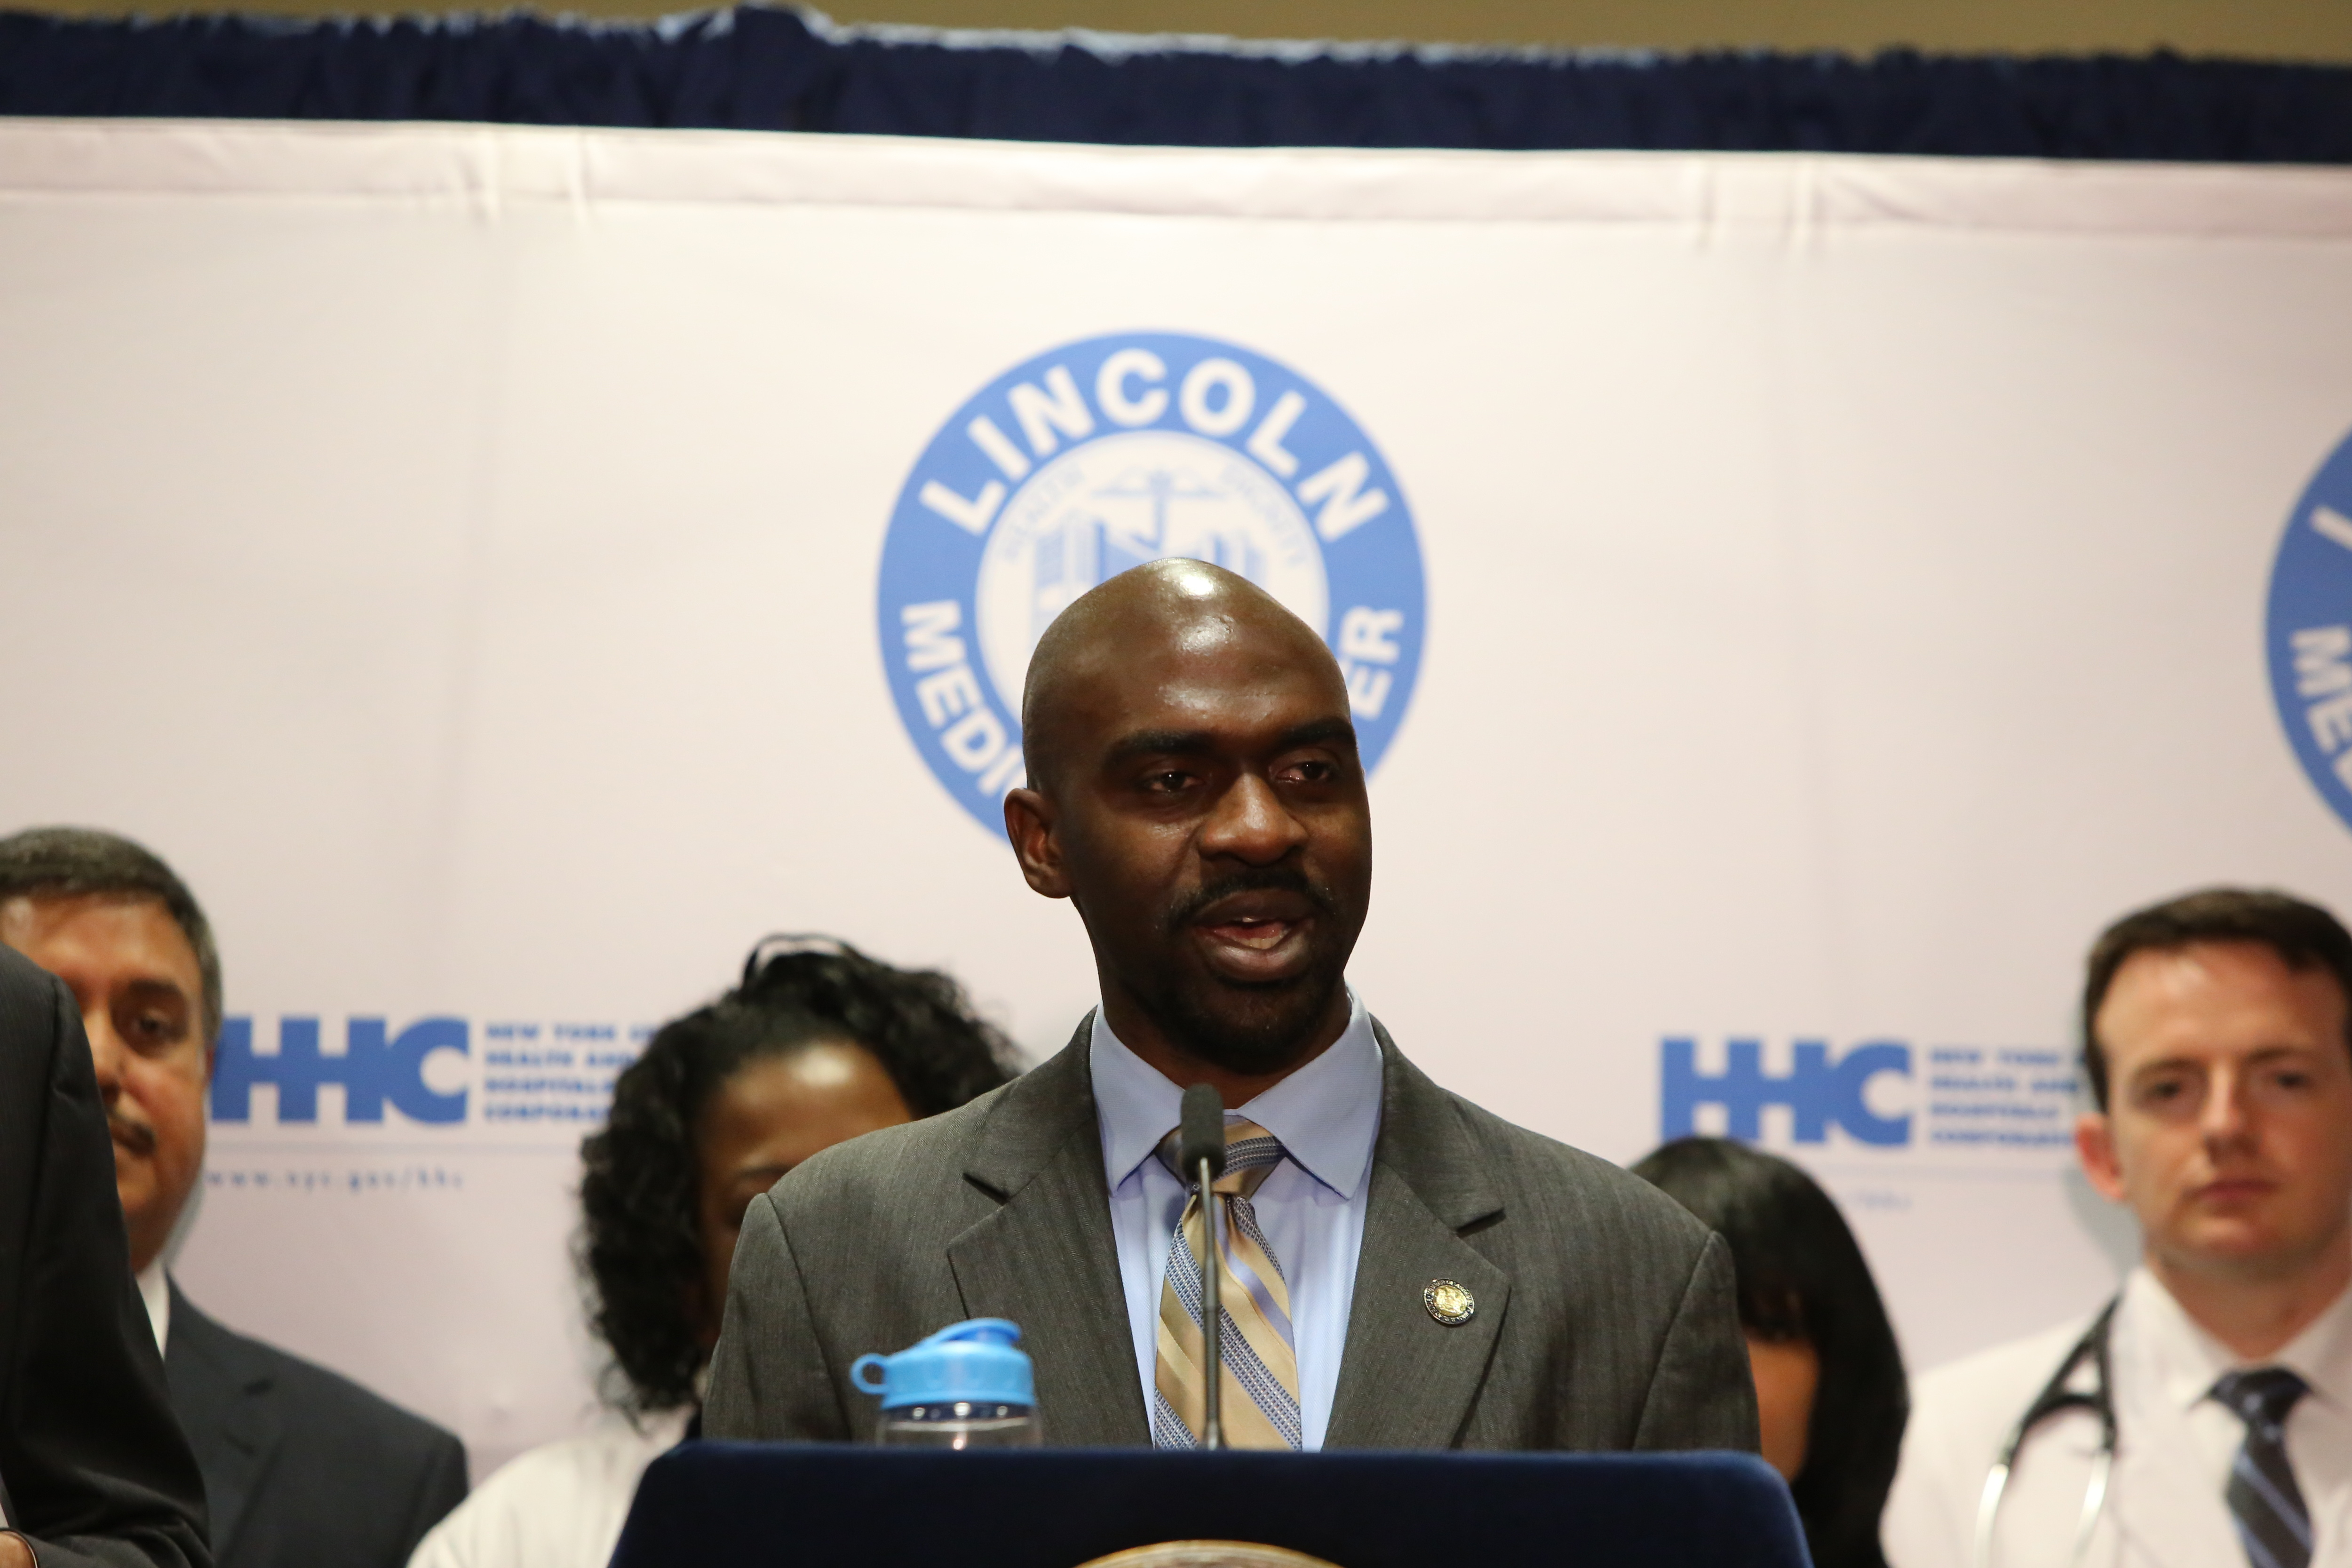 NY state assembly member Michael Blake of the 79th district...